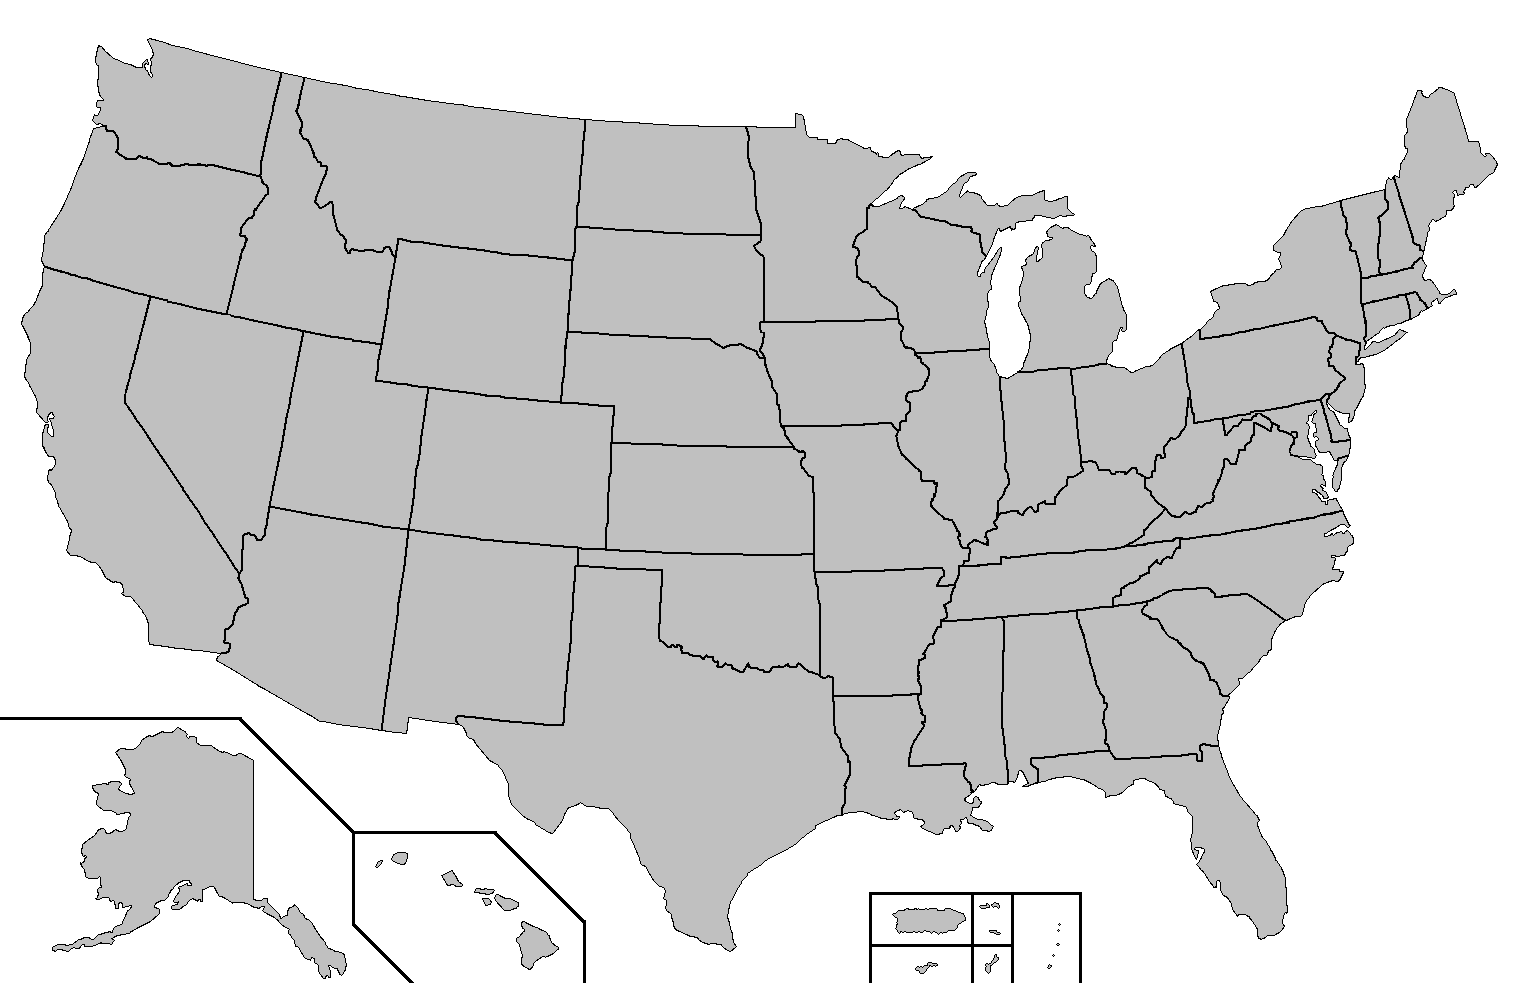 FileBlank Map Of The United StatesPNG Wikimedia Commons - Outline map of us states